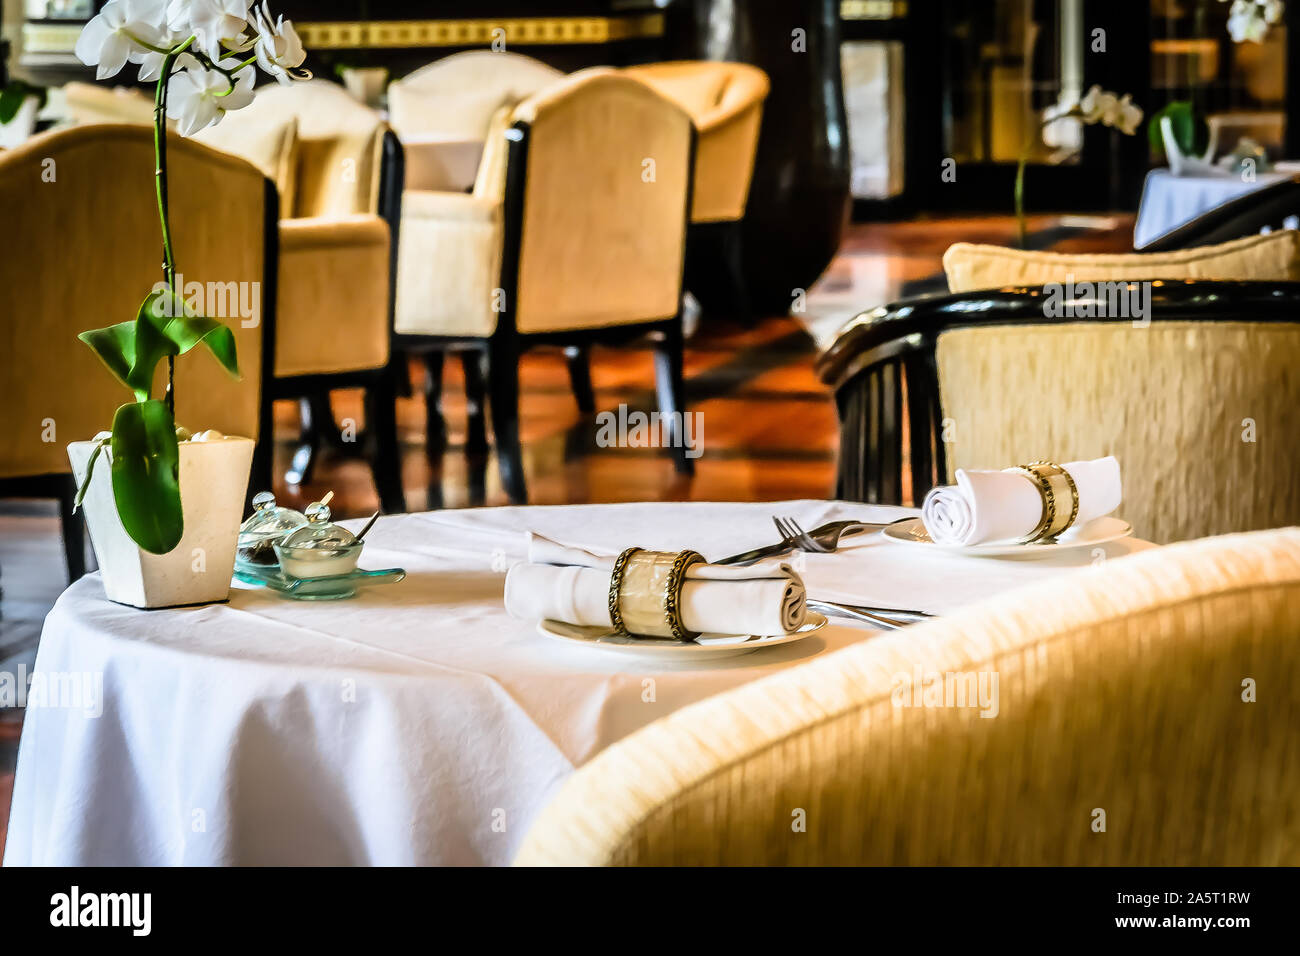 Beautiful Restaurant With White Linen Table Cloths White Linen Napkins And Mother Of Pearl Napkin Holders Stock Photo Alamy